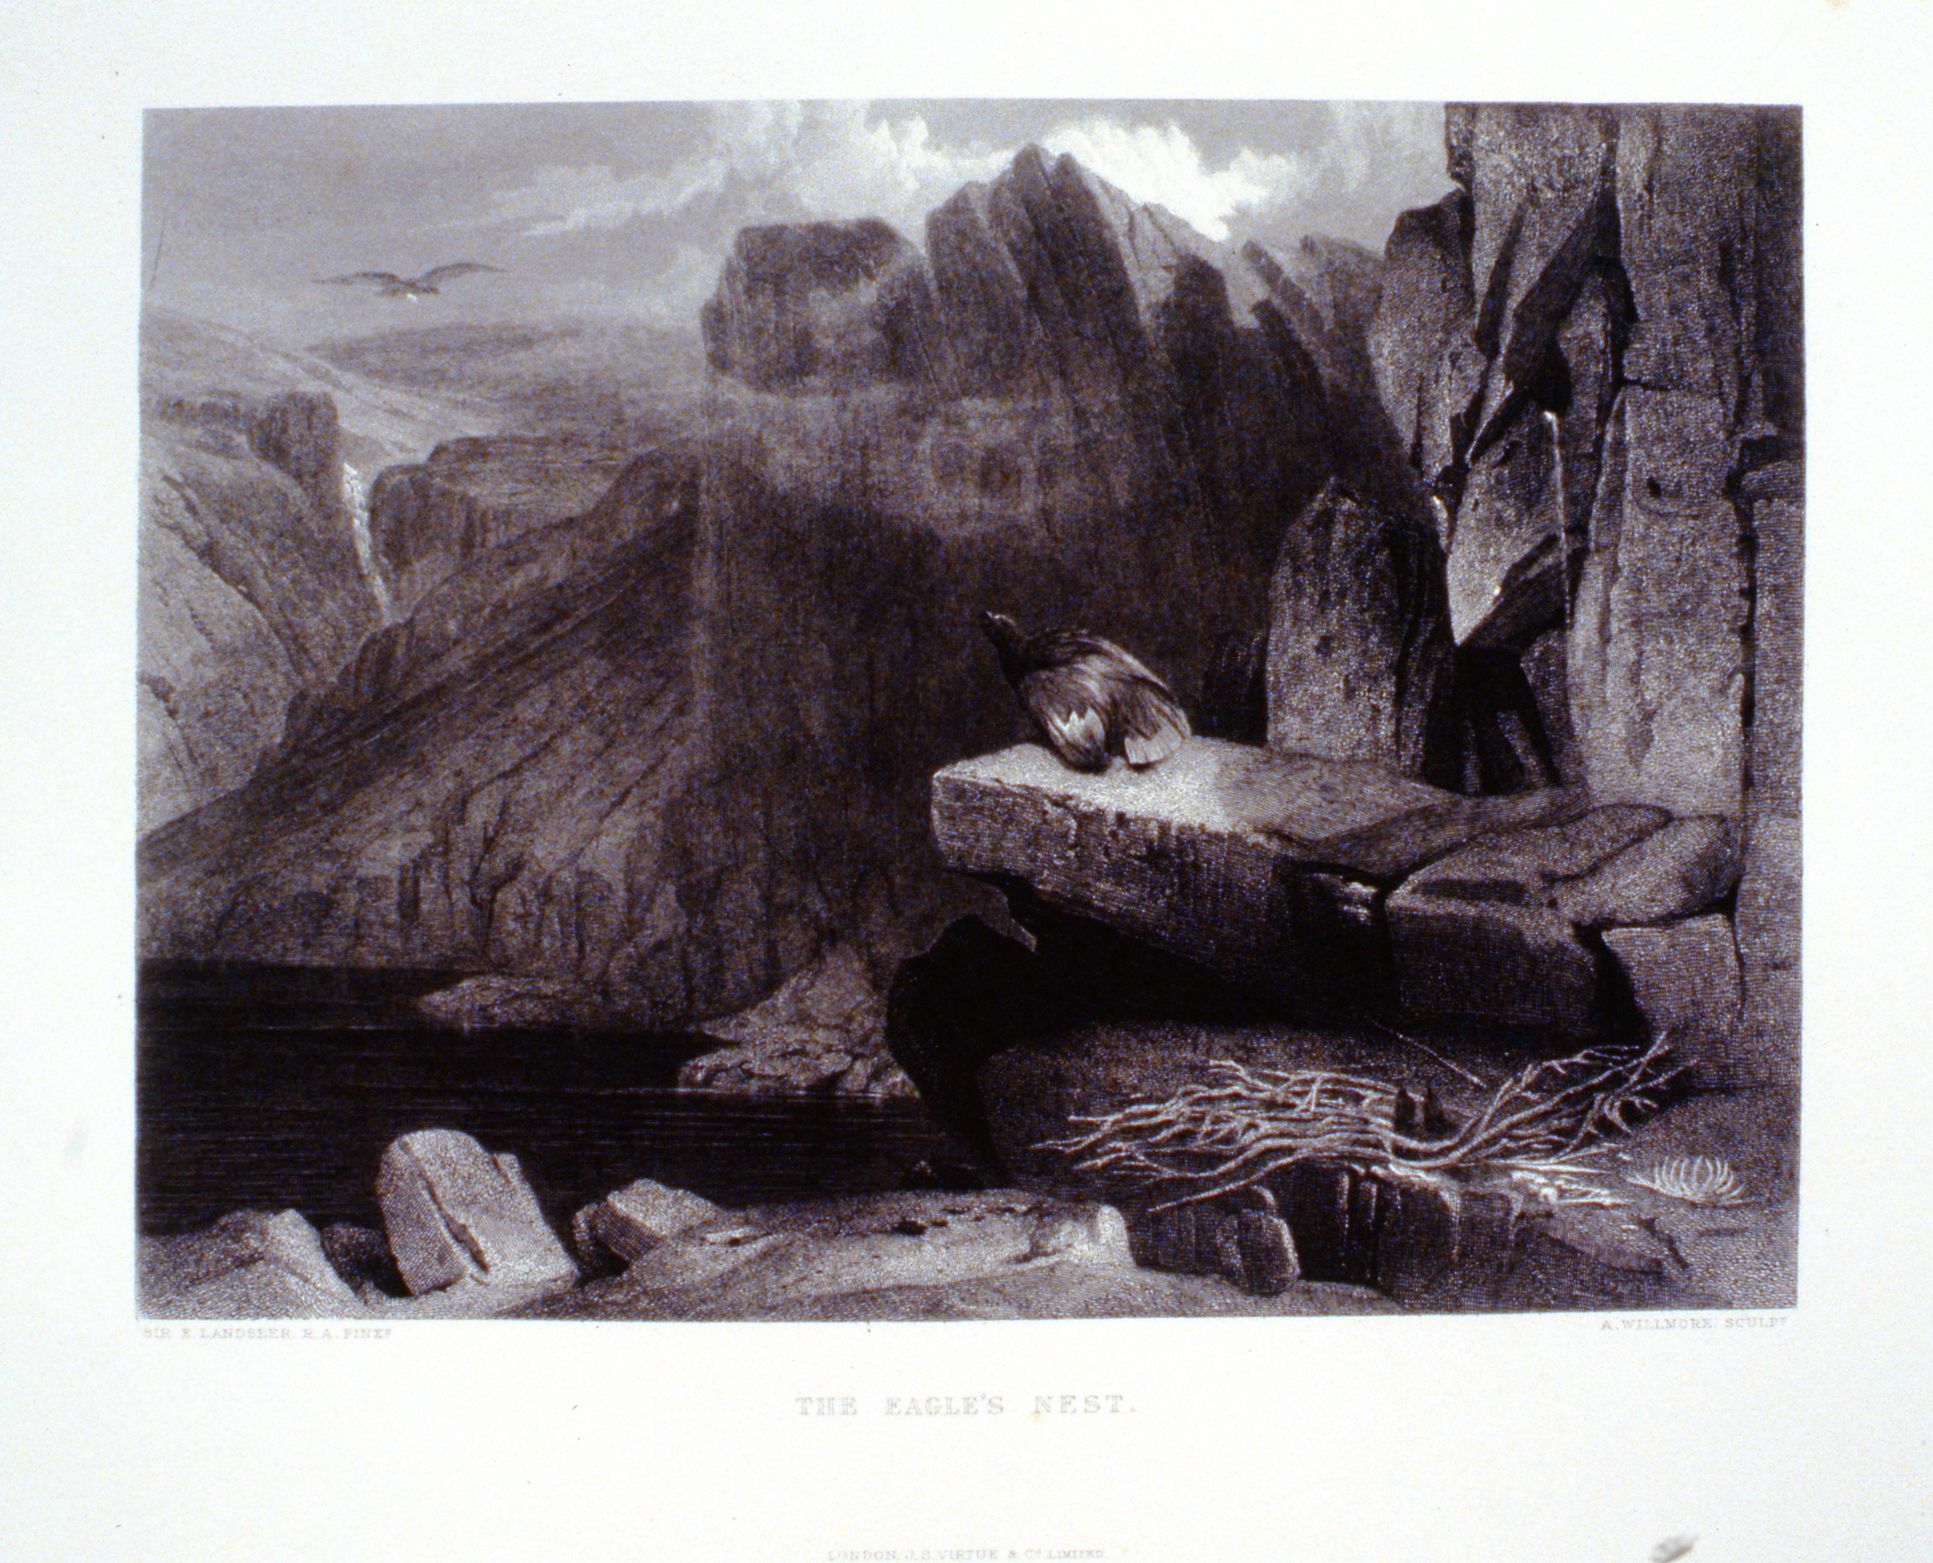 The Eagles Nest , c. late 19th Century, A. Willmore, steel engraving, 18.2 cm x 25 cm, 1996.08.18, gift of Yvonne Adams